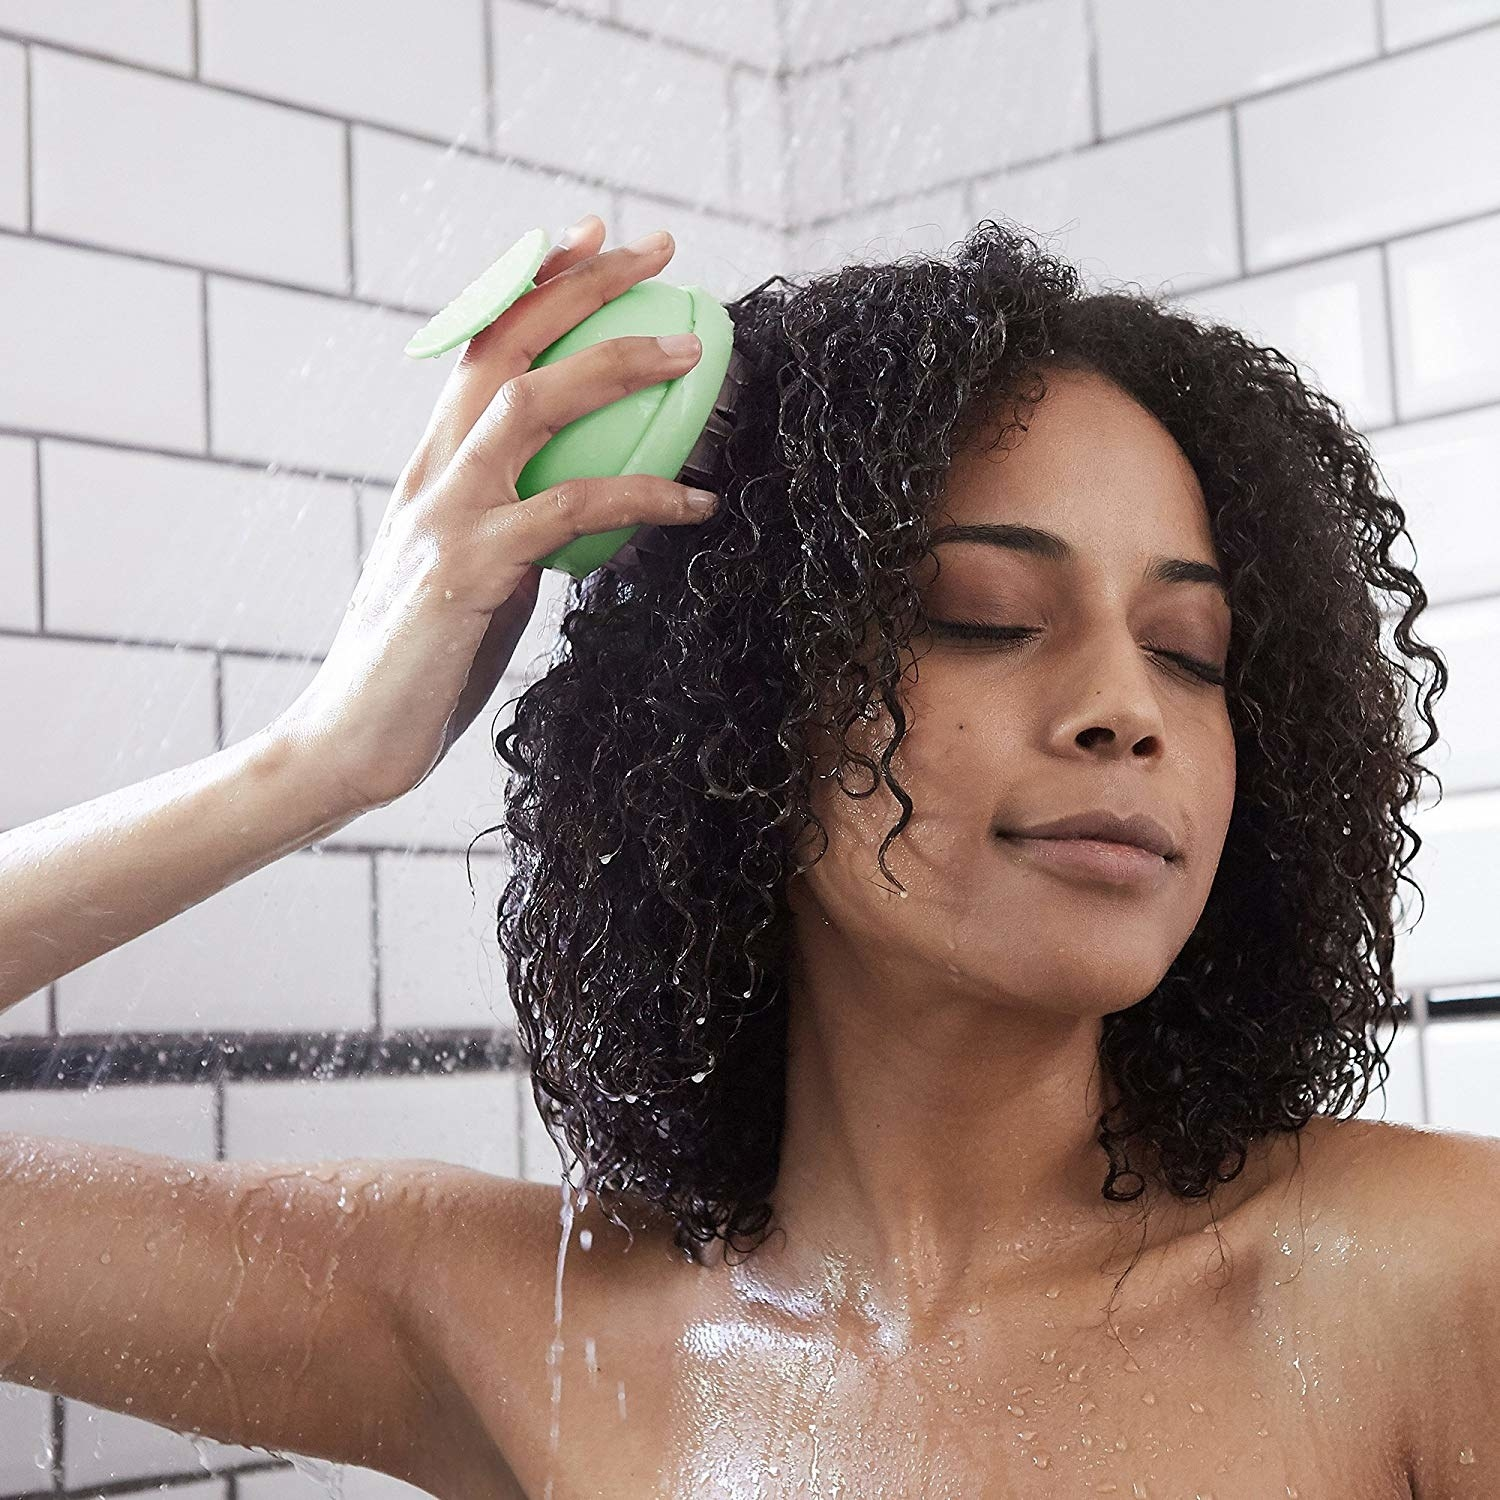 A model using the massaging tool on their scalp while washing their hair